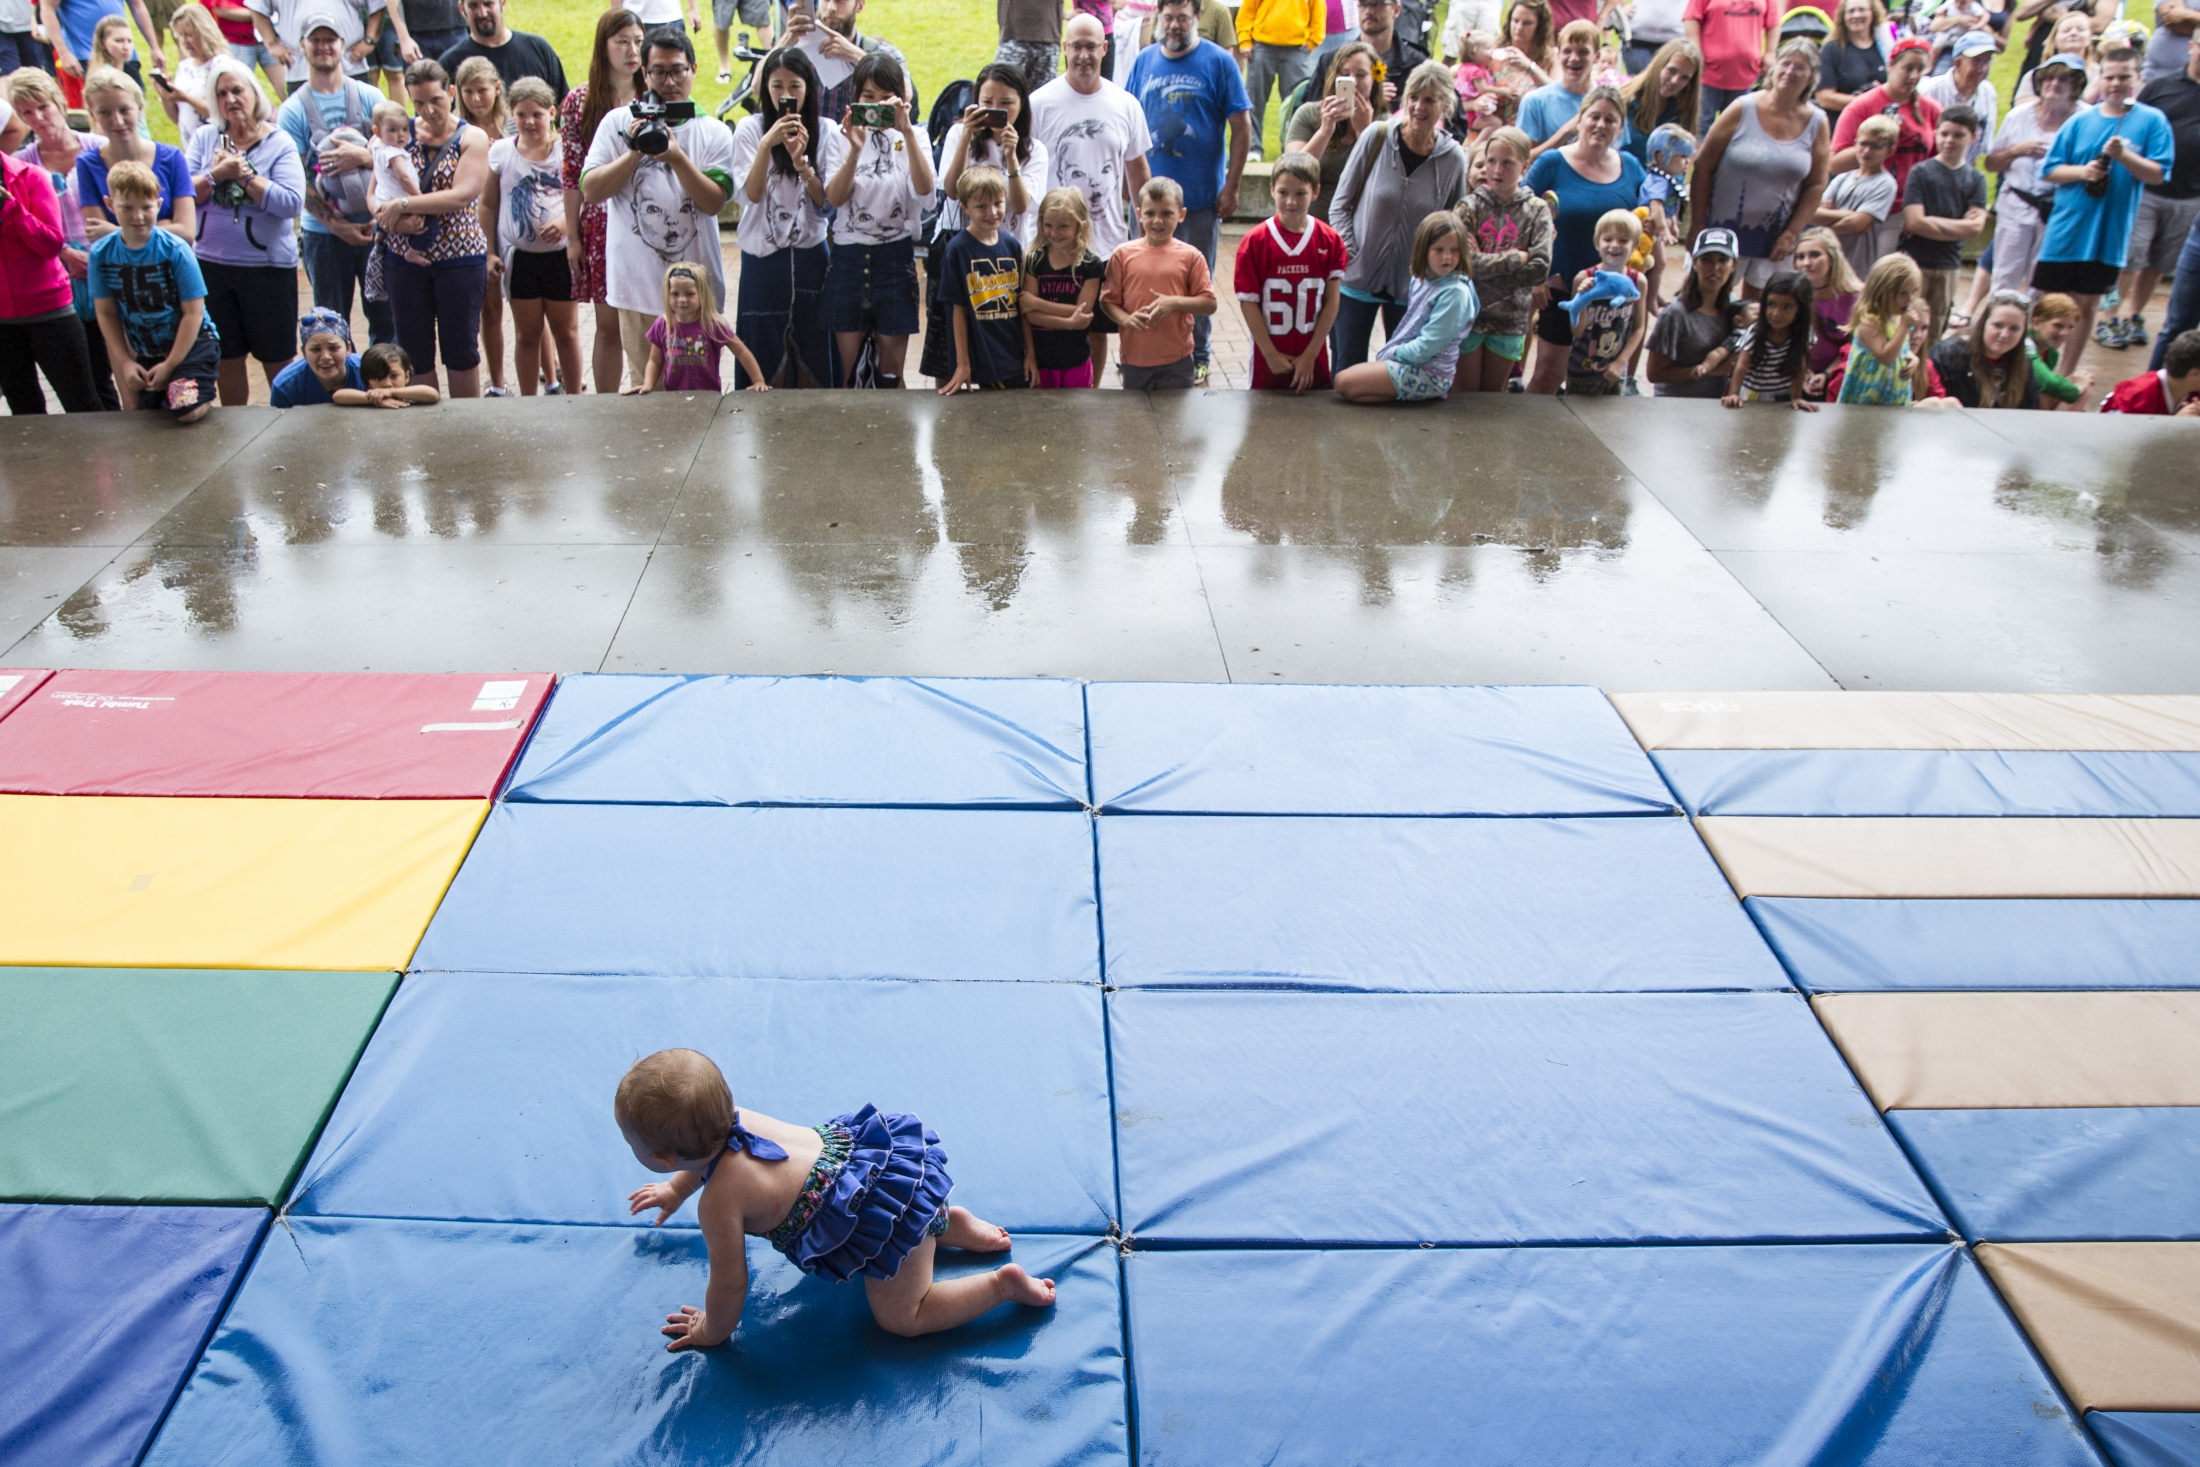 10-month-old Piper Nelson crawls across the mat during a baby crawl contest at National Baby Food Festival in downtown Fremont, Mich. on Saturday, July 22, 2017. Nelson finished her heat in first place.